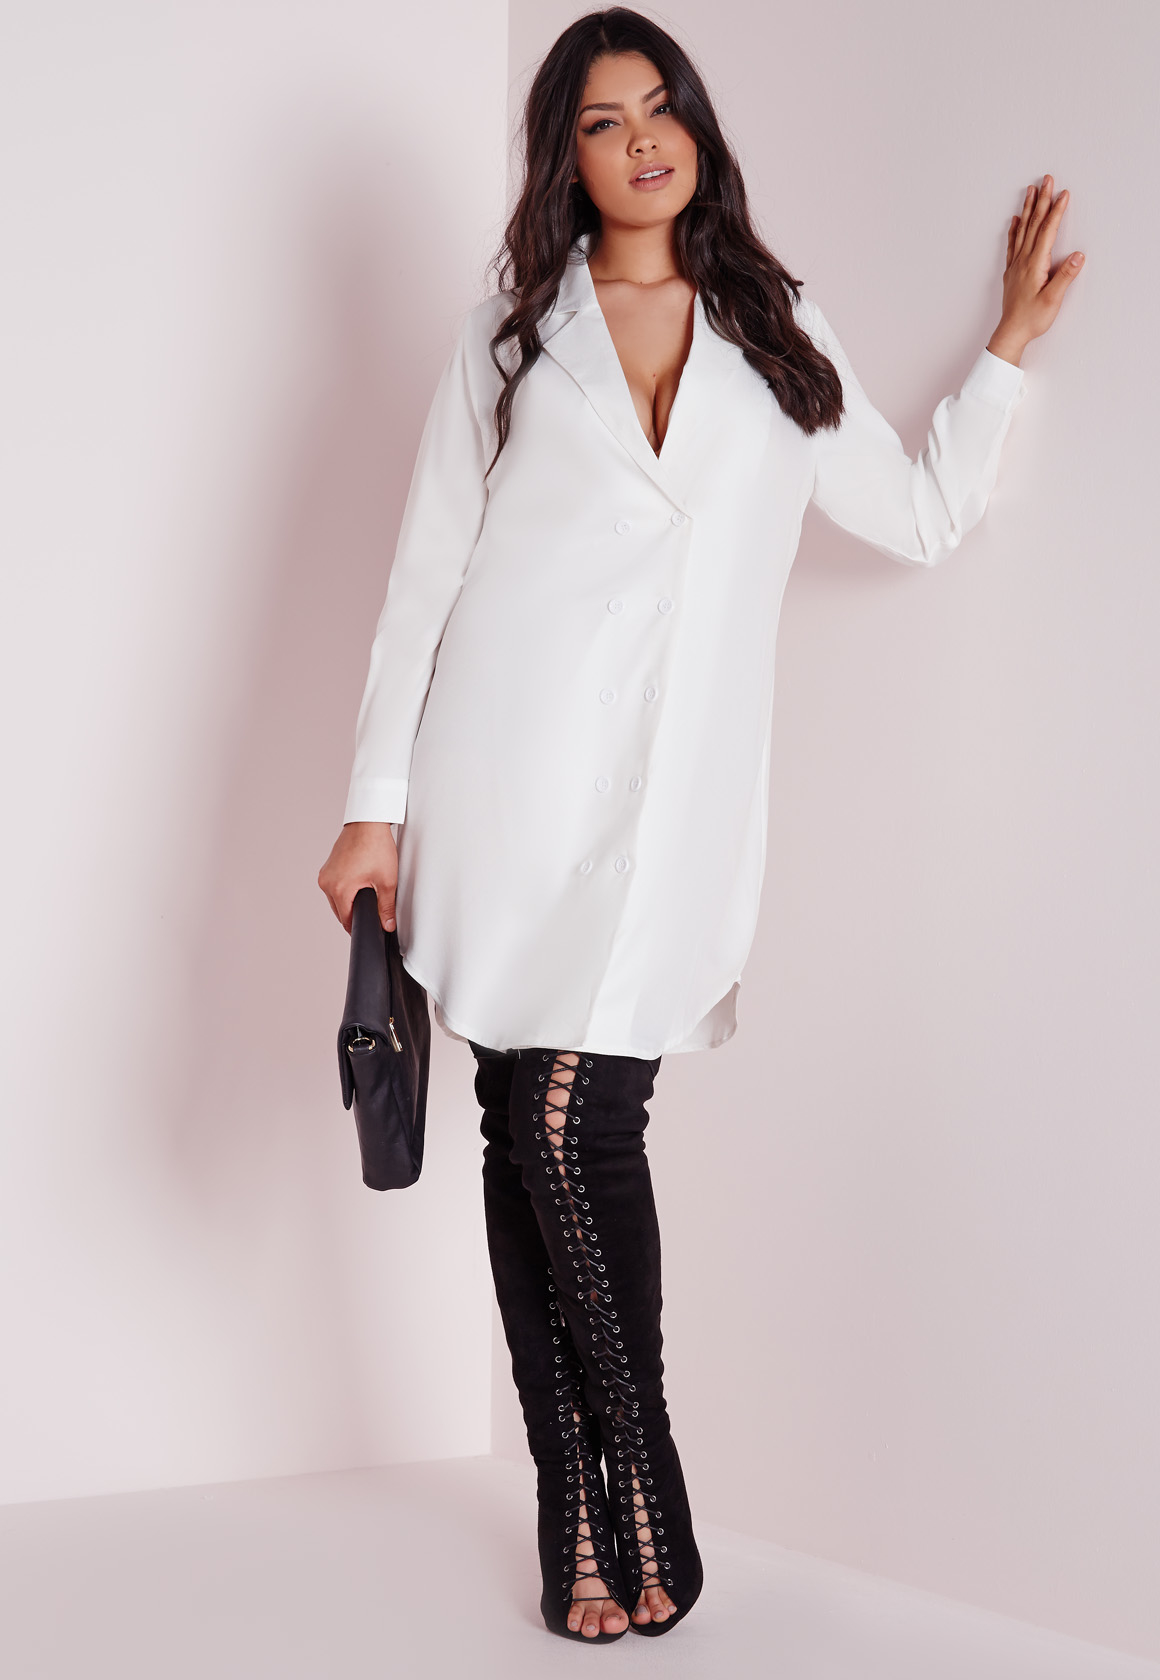 Plus Size White Dress Shirts - Dress Foto and Picture